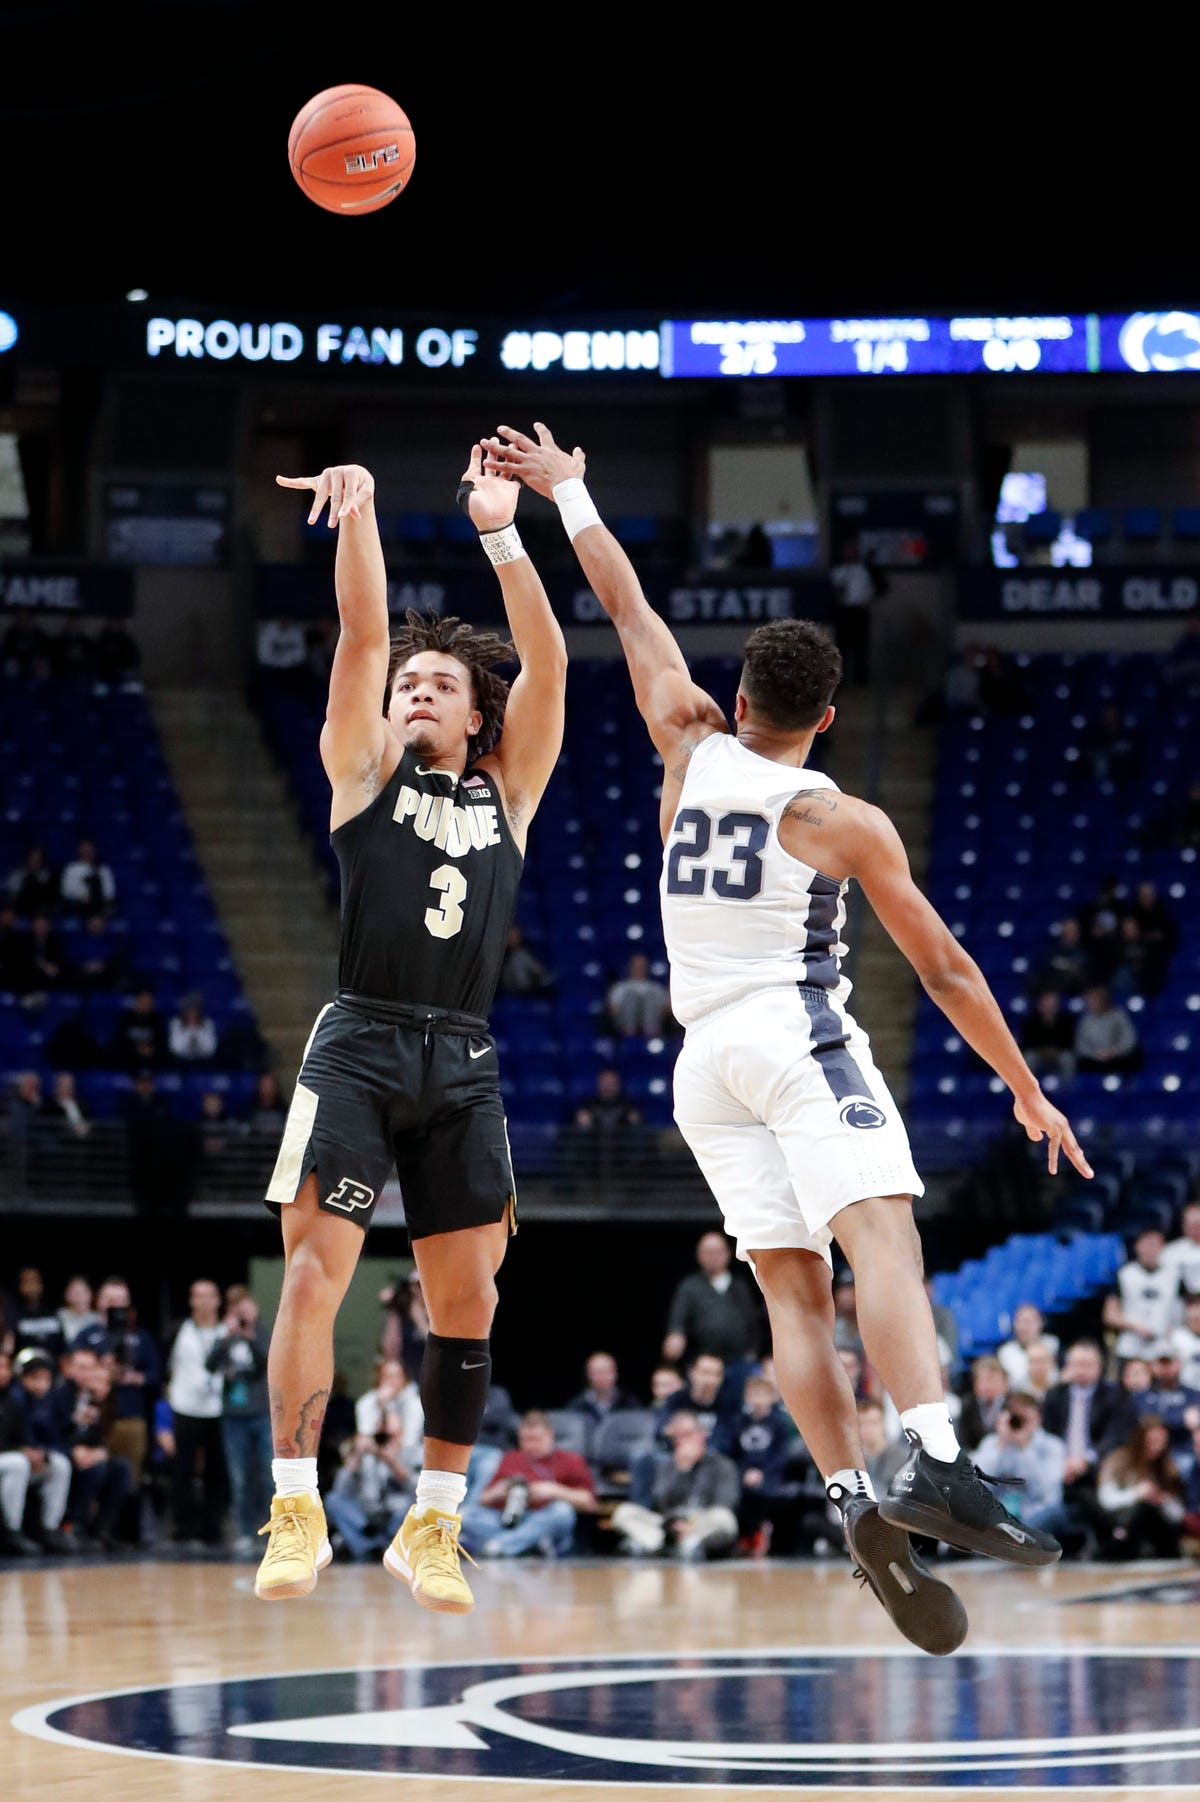 Purdue Basketball S Carsen Edwards And Ryan Cline Enough At Penn State